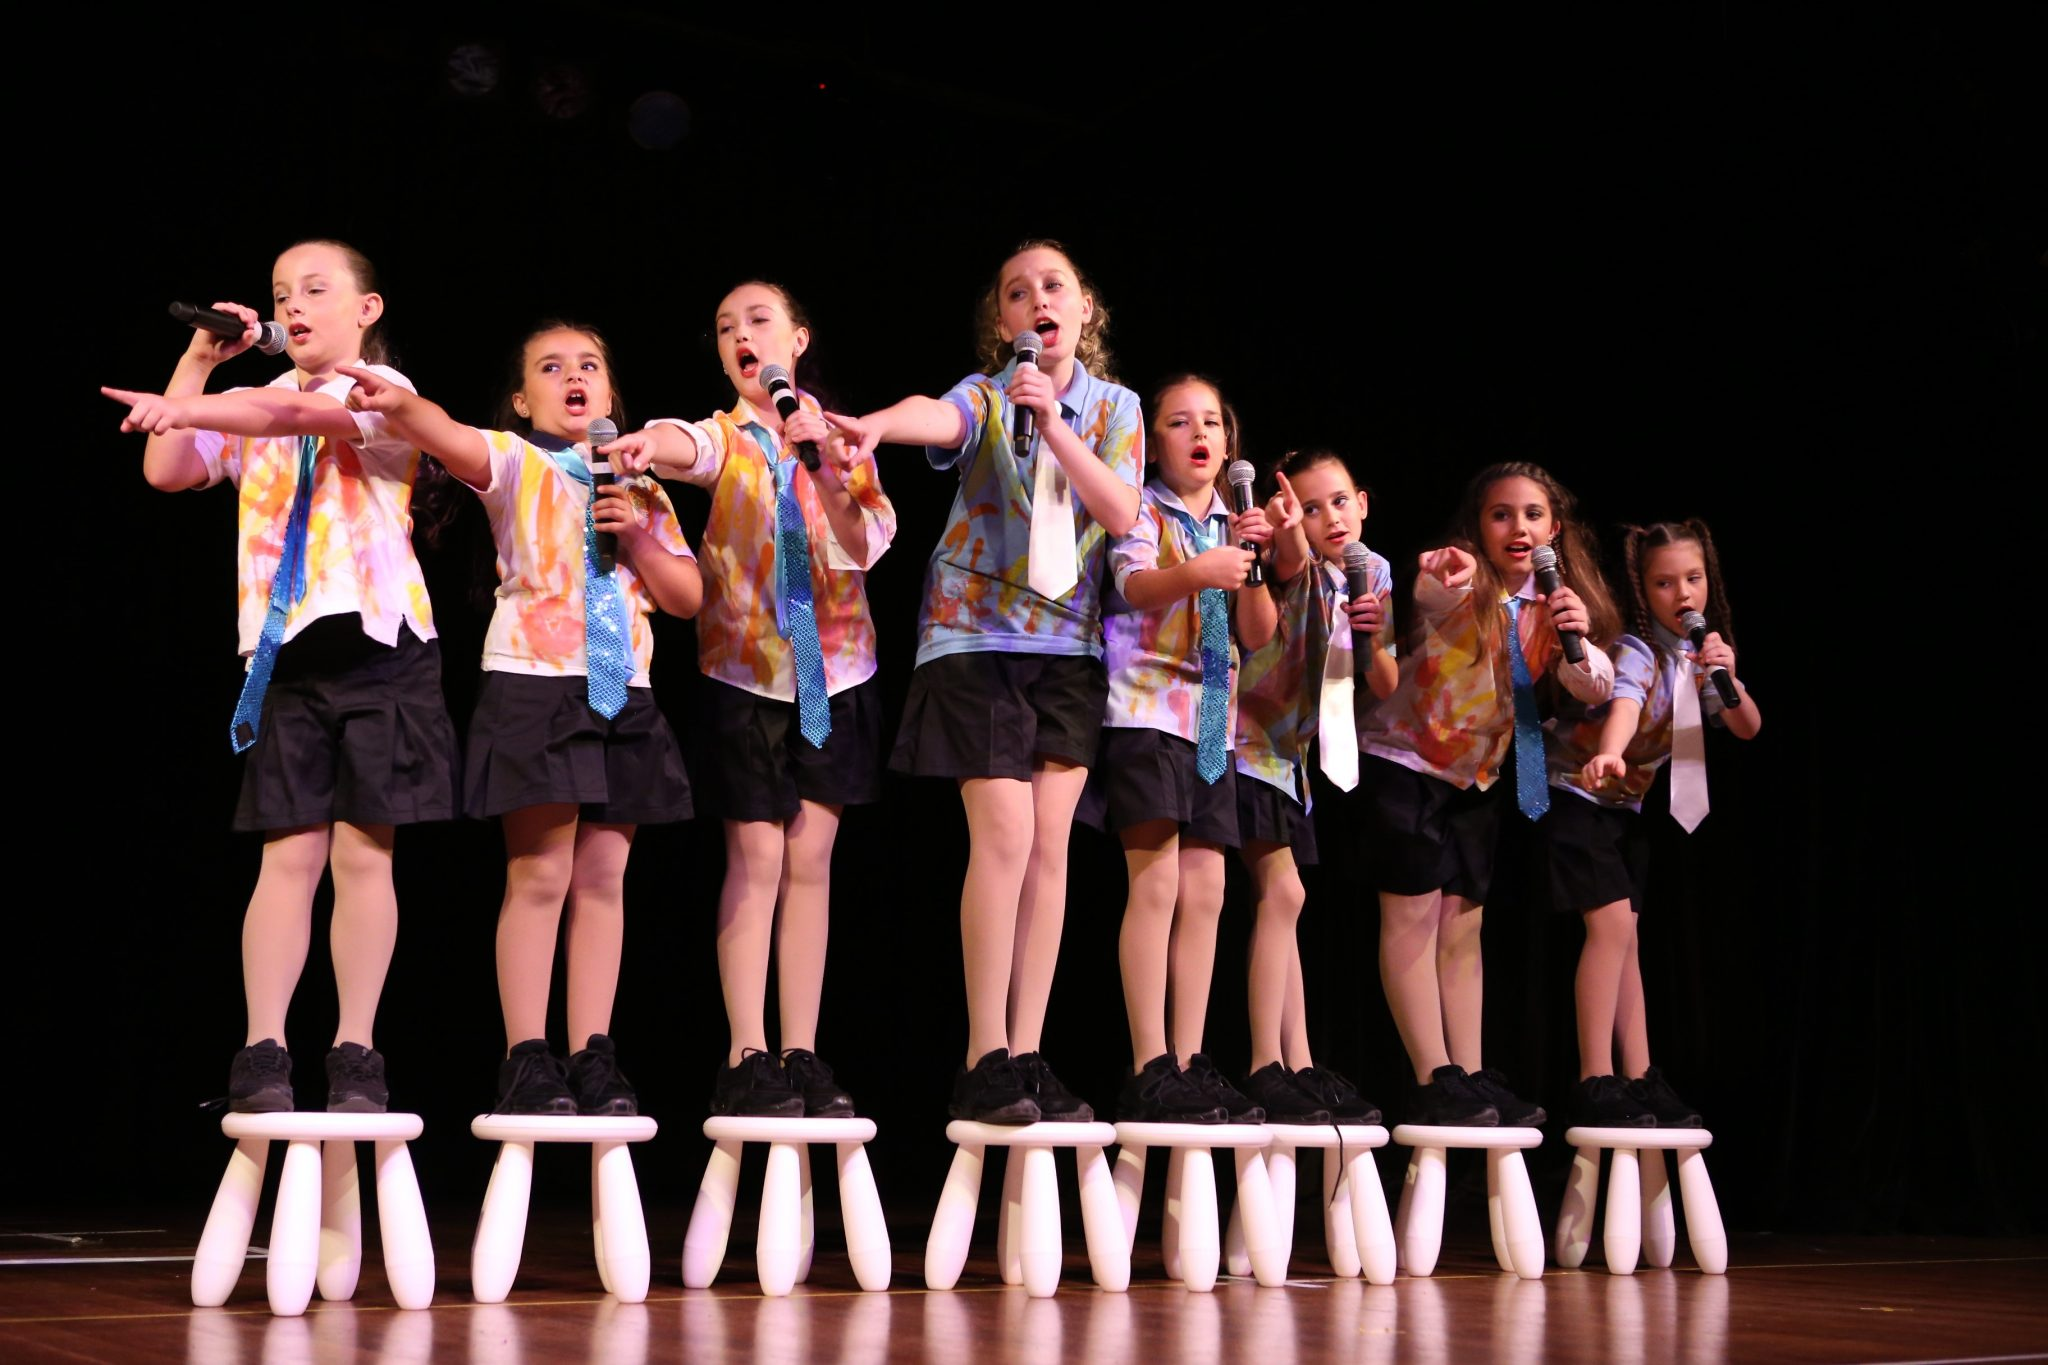 Young performers singing at dance concert